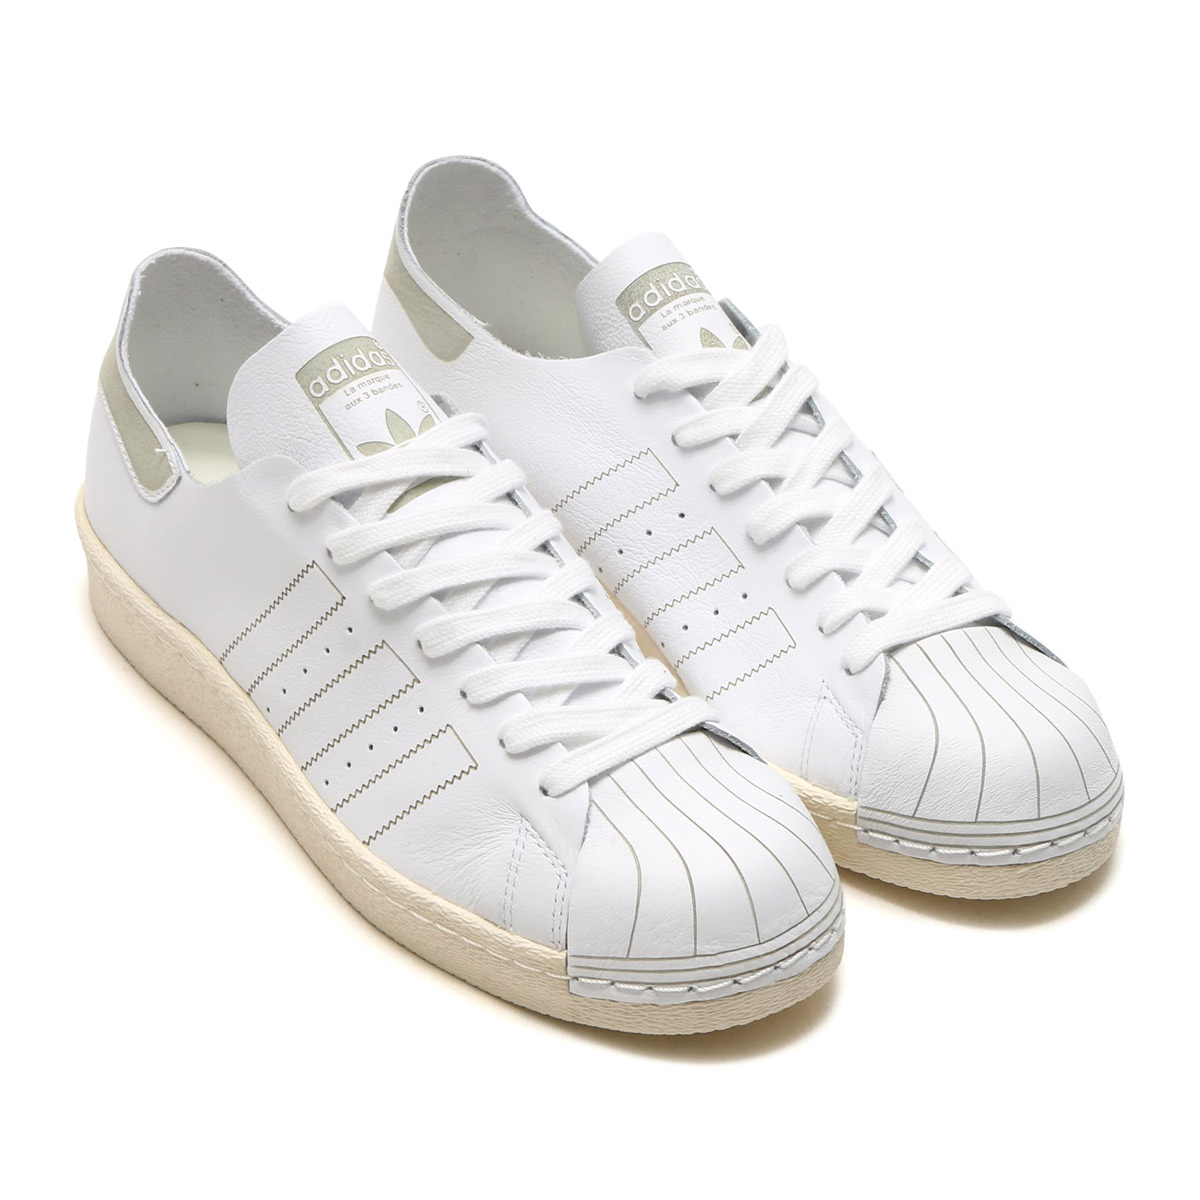 ADIDAS SUPERSTAR 80s PK PRIMEKNIT RAINBOW WHITE BLACK